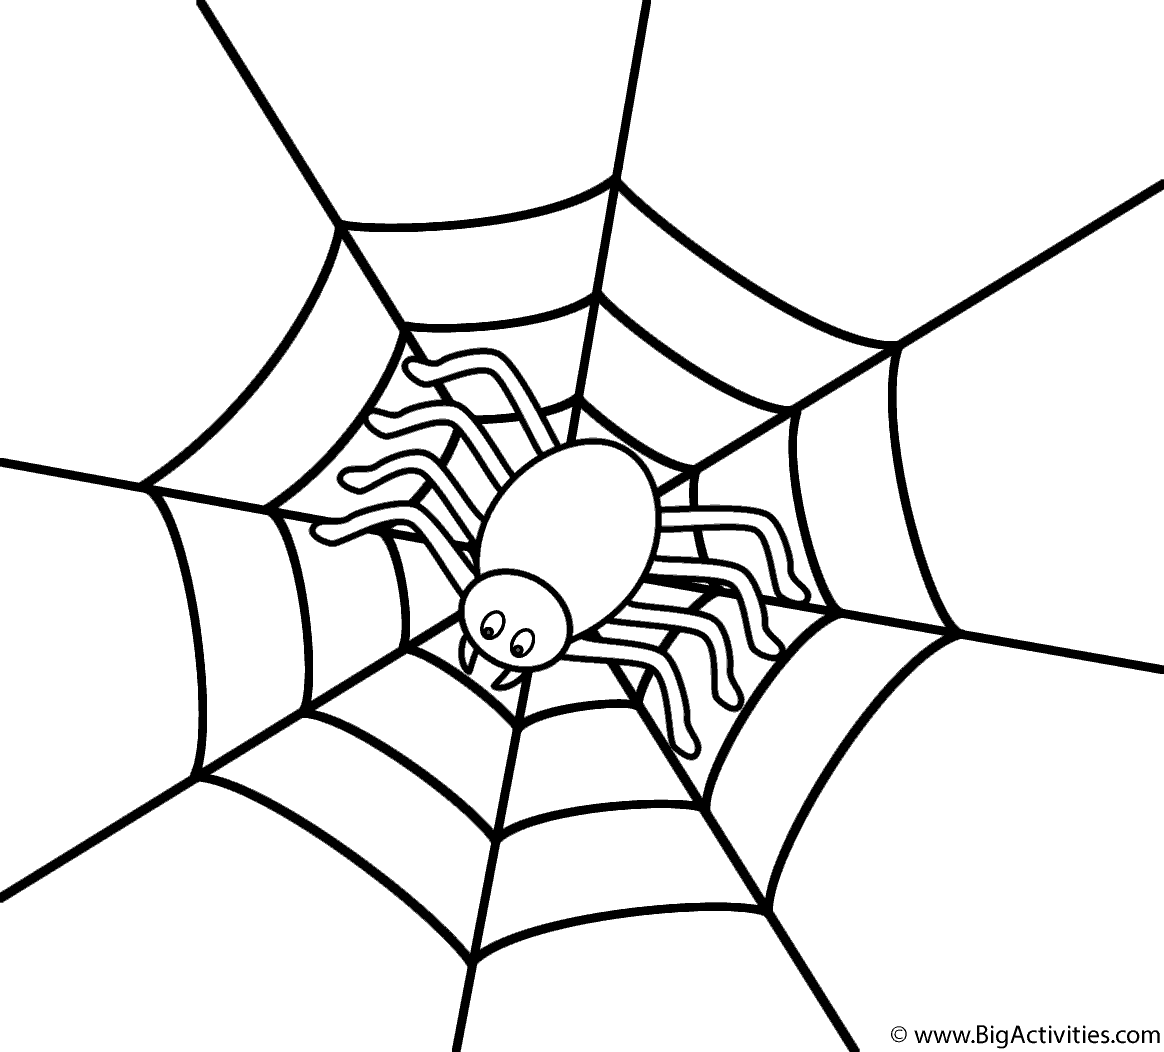 Spider In The Center Of Web